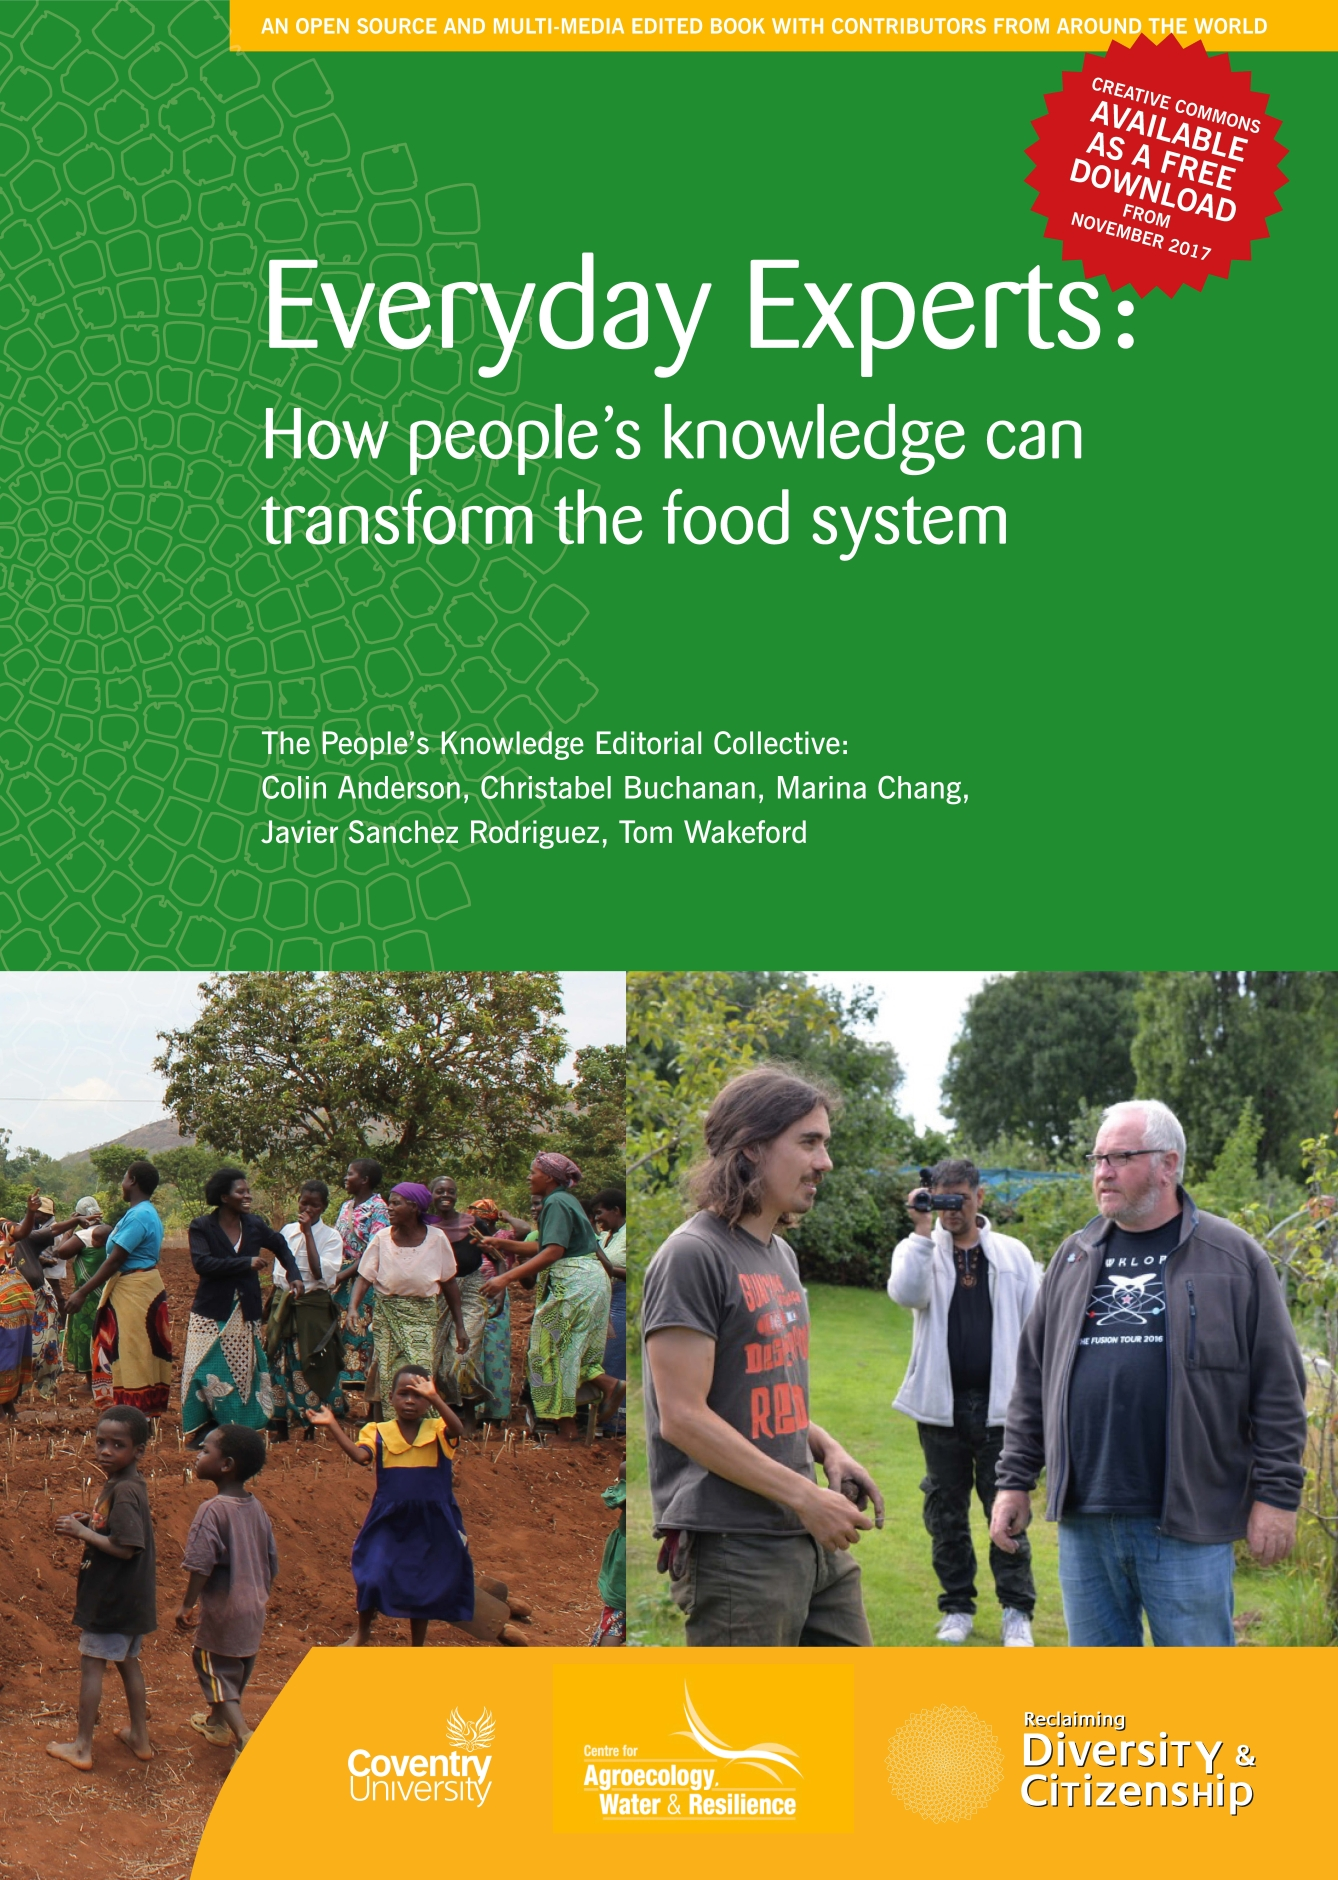 """Cover page of the book """"Everyday Experts: How people's knowledge can transform the food system."""